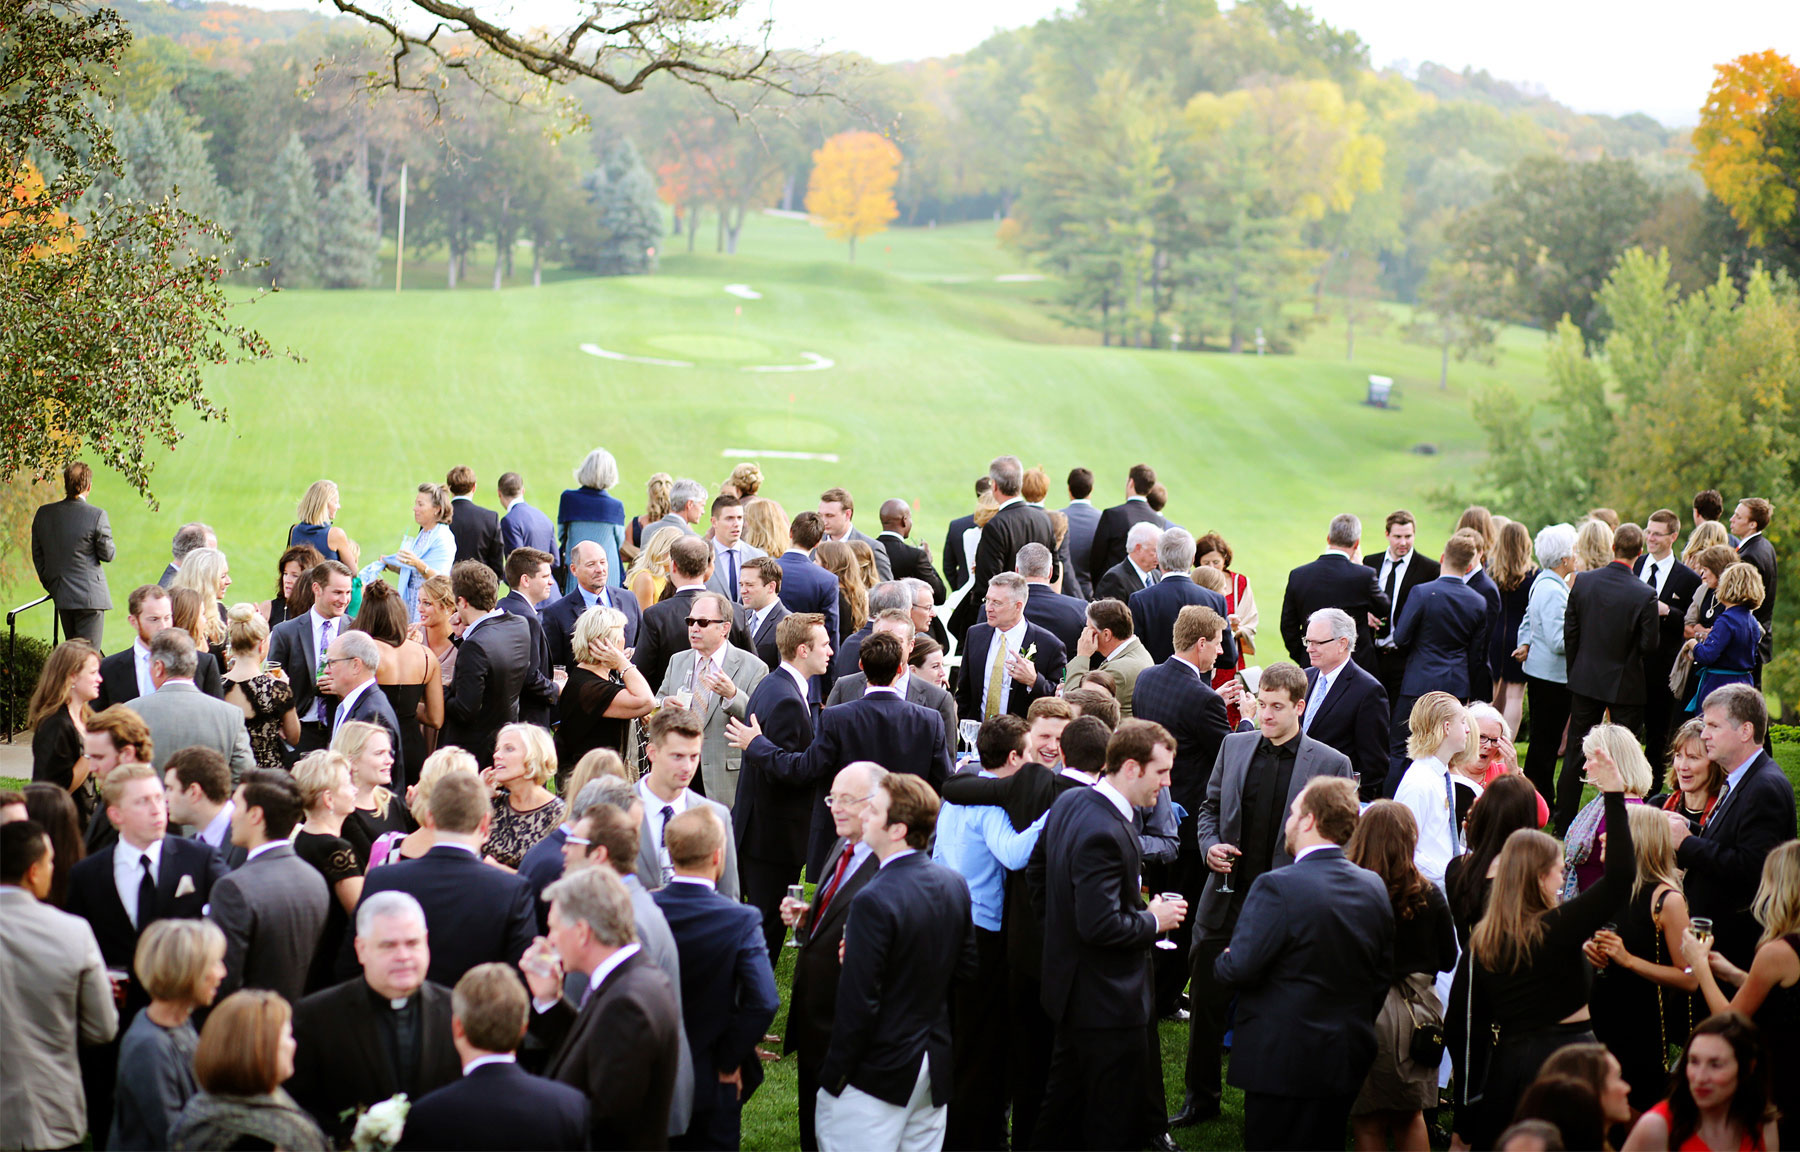 17-Minneapolis-Minnesota-Wedding-Photography-by-Vick-Photography-Woodhill-Country-Club-Golf-Course-Autumn-Fall-Colors-Cocktail-Hour-Elle-and-Tyler.jpg